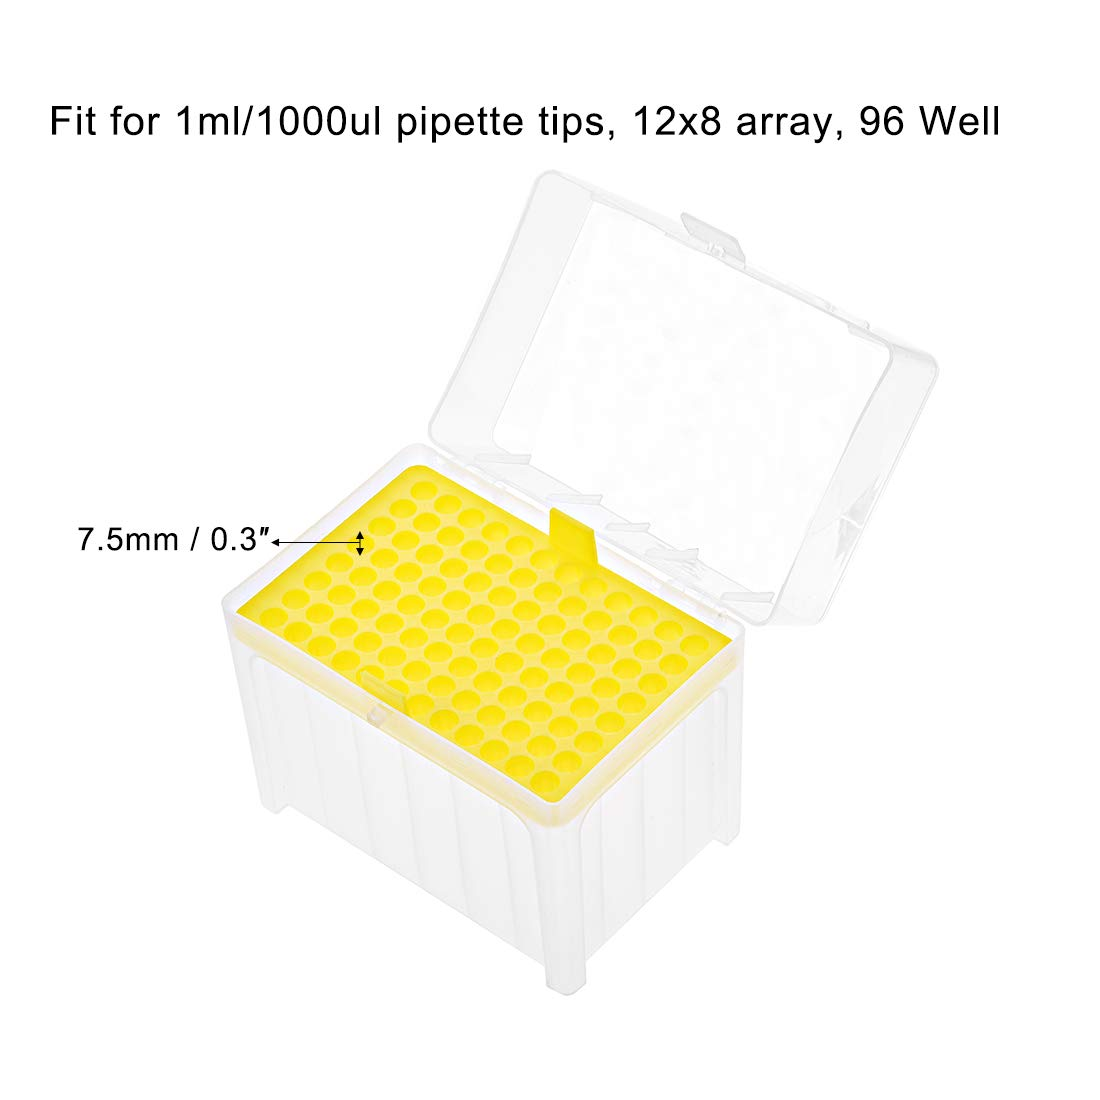 uxcell Pipette Tips Box 96-Well Polypropylene Tip Holder Container for 1ml//1000ul Pipettor 7.5mm Hole Diameter Yellow